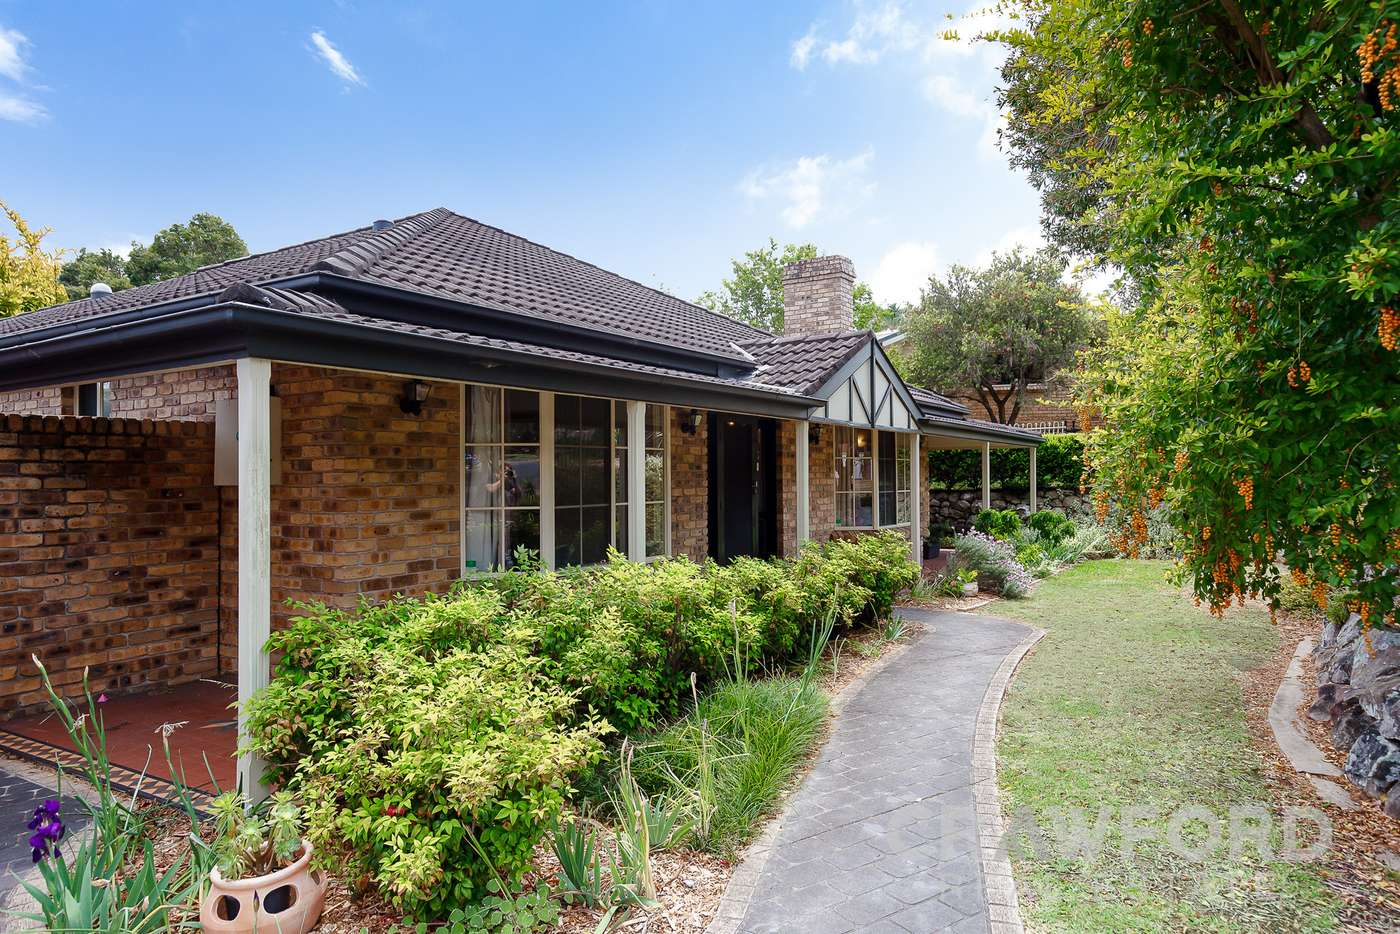 Main view of Homely house listing, 65 Birchgrove Drive, Wallsend NSW 2287